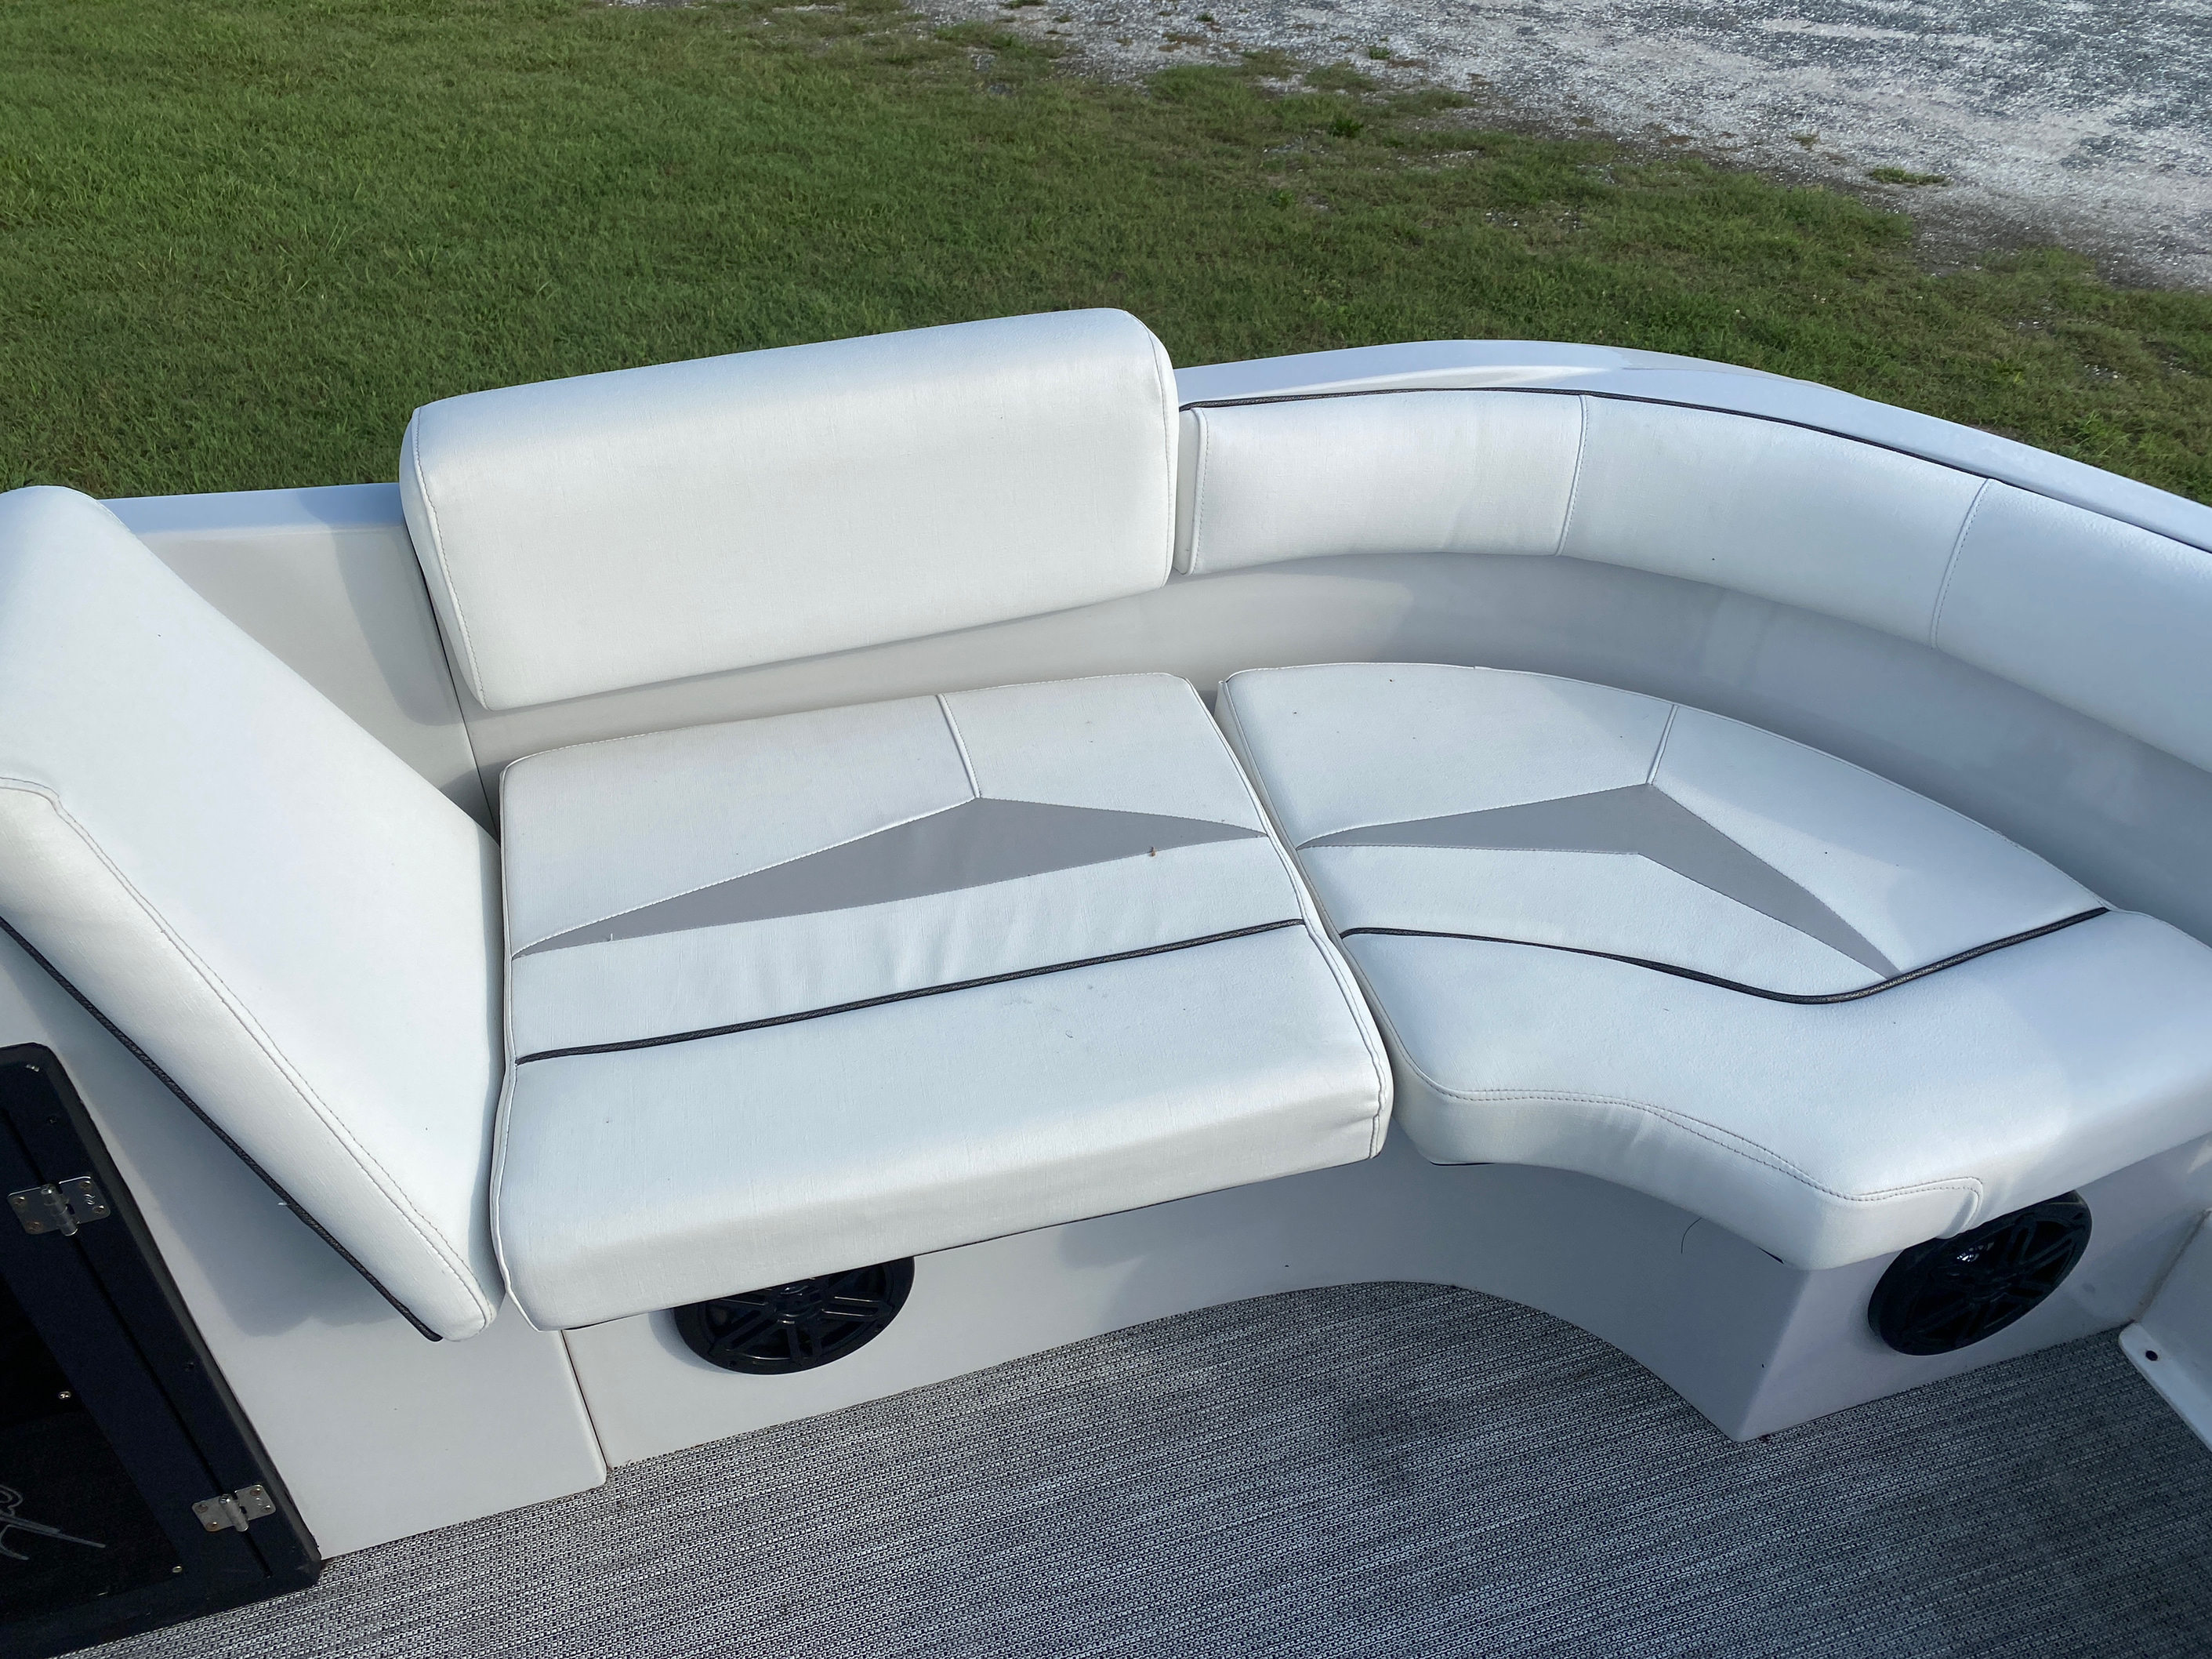 2019 Caravelle boat for sale, model of the boat is 219DD Deck Boat & Image # 6 of 14